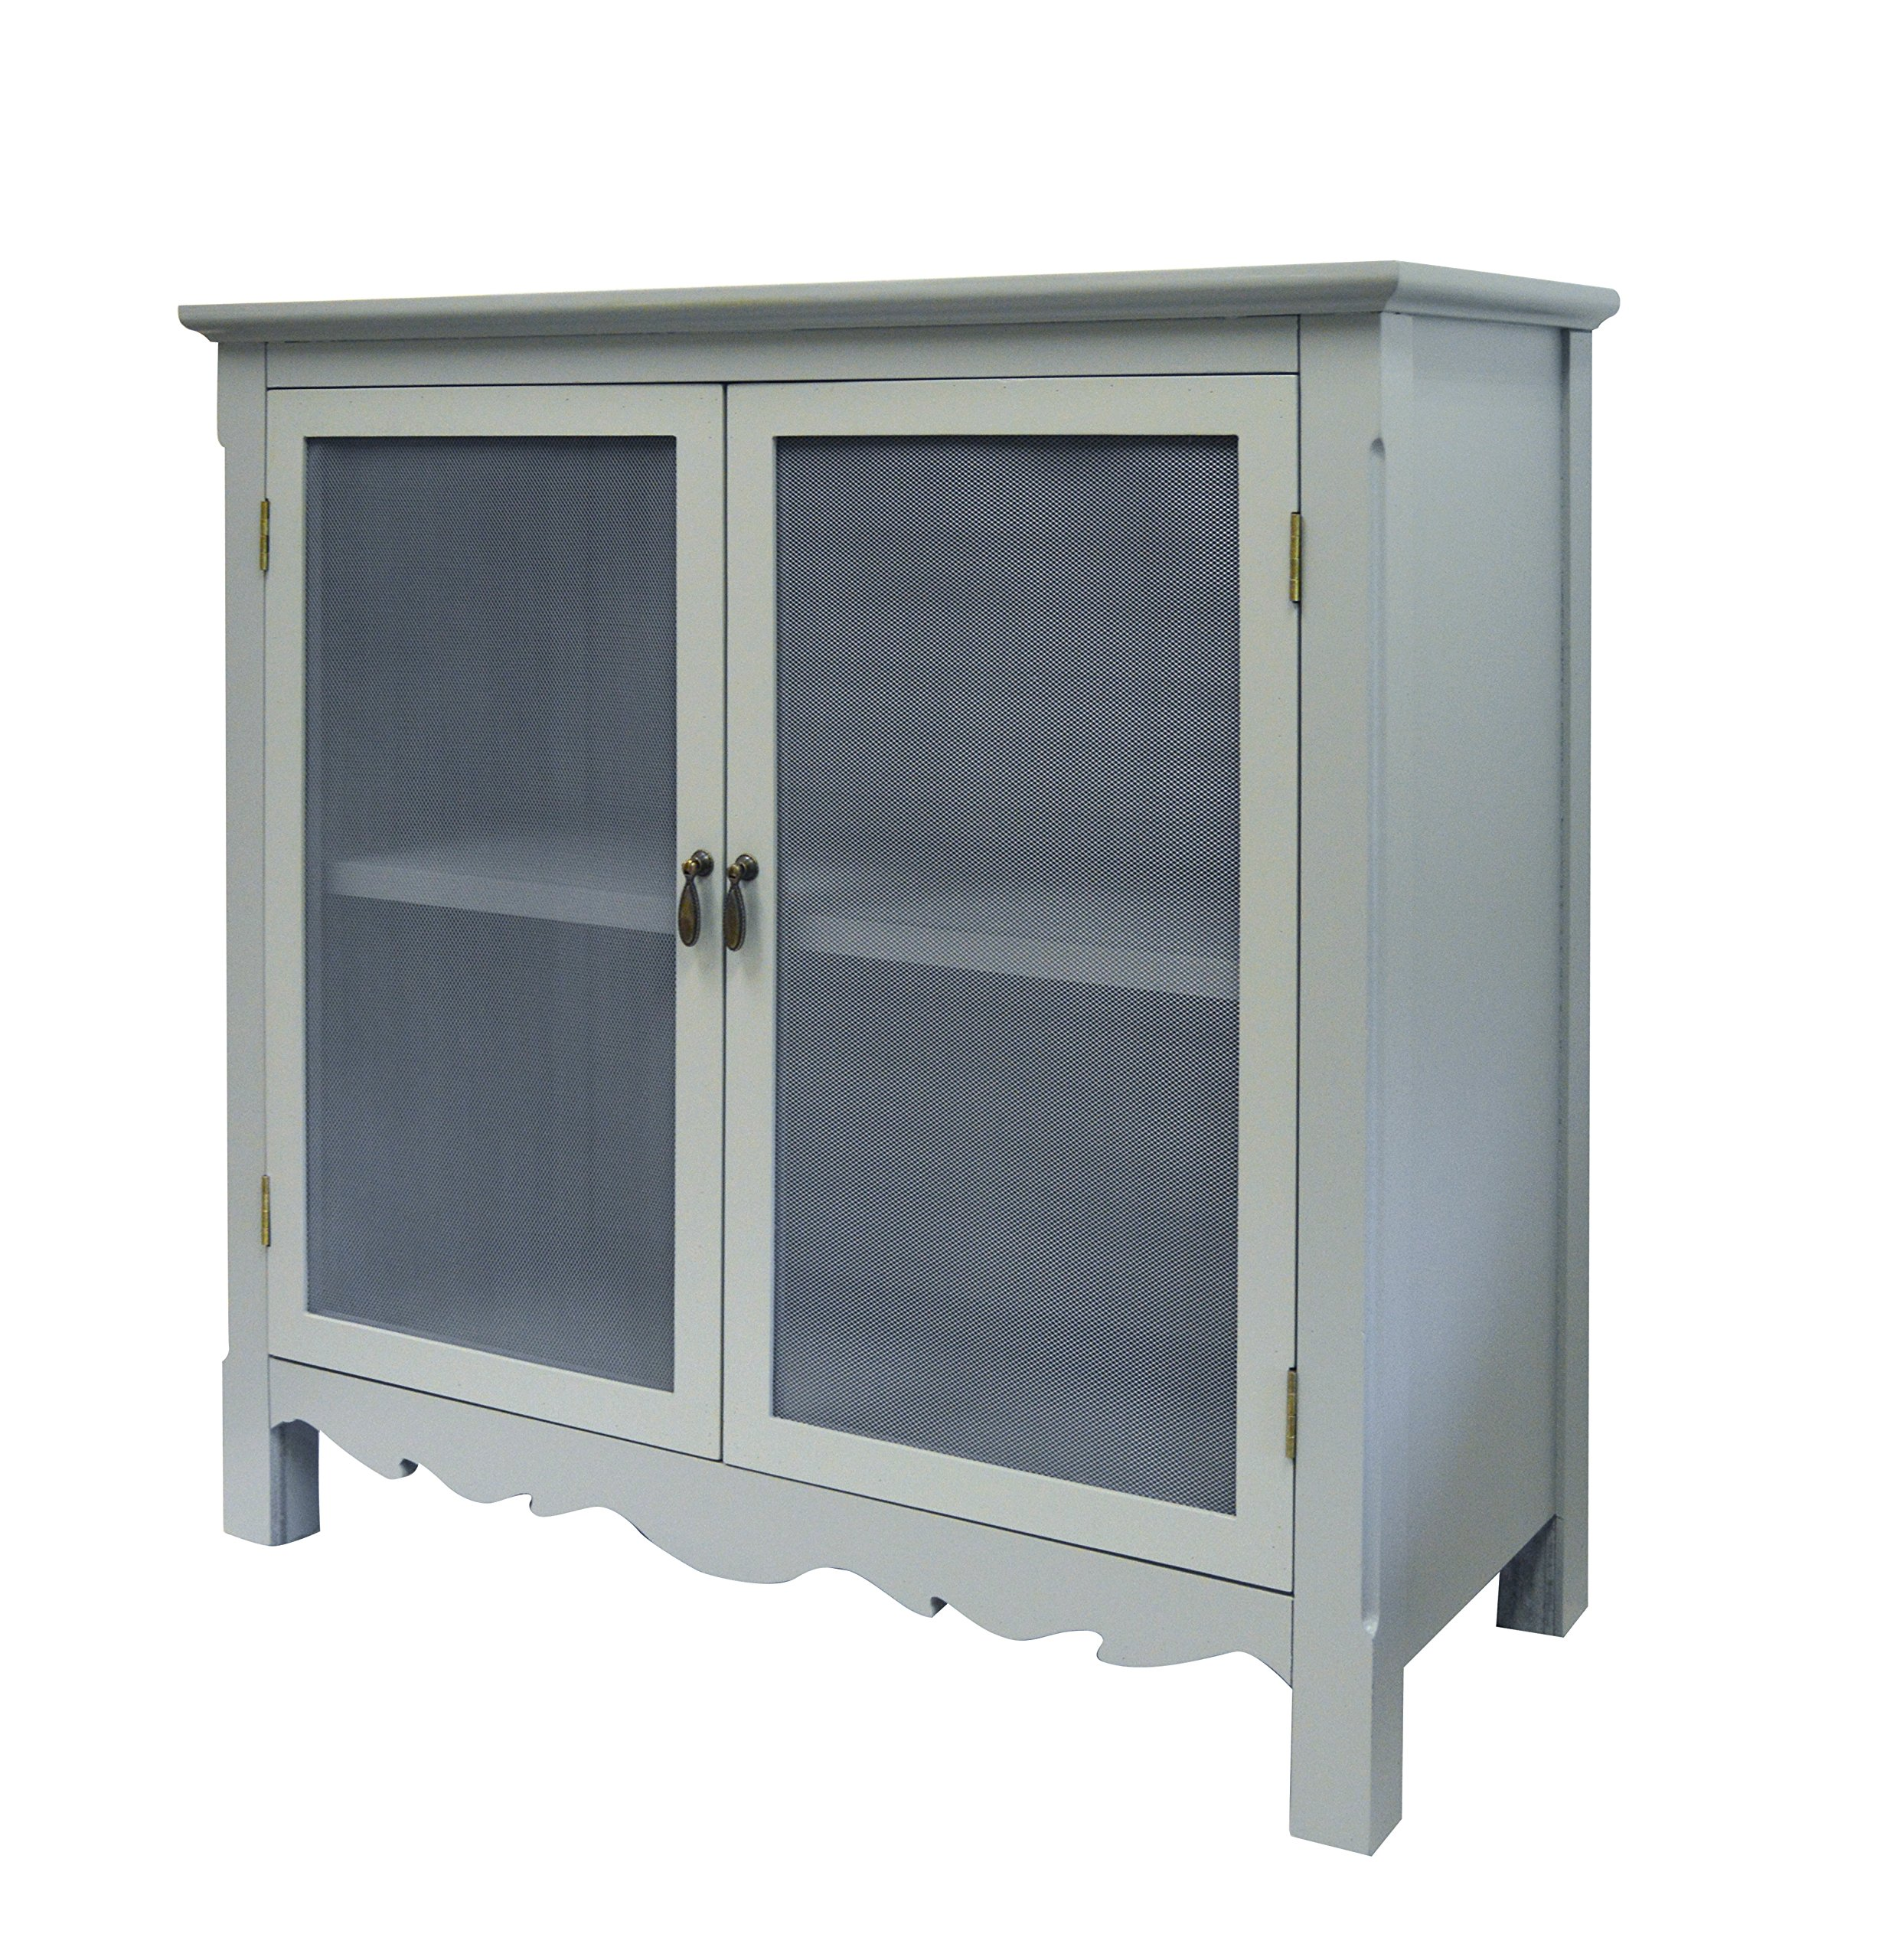 GRAY CHARLESTON CABINET by Haven Home Décor (Image #1)